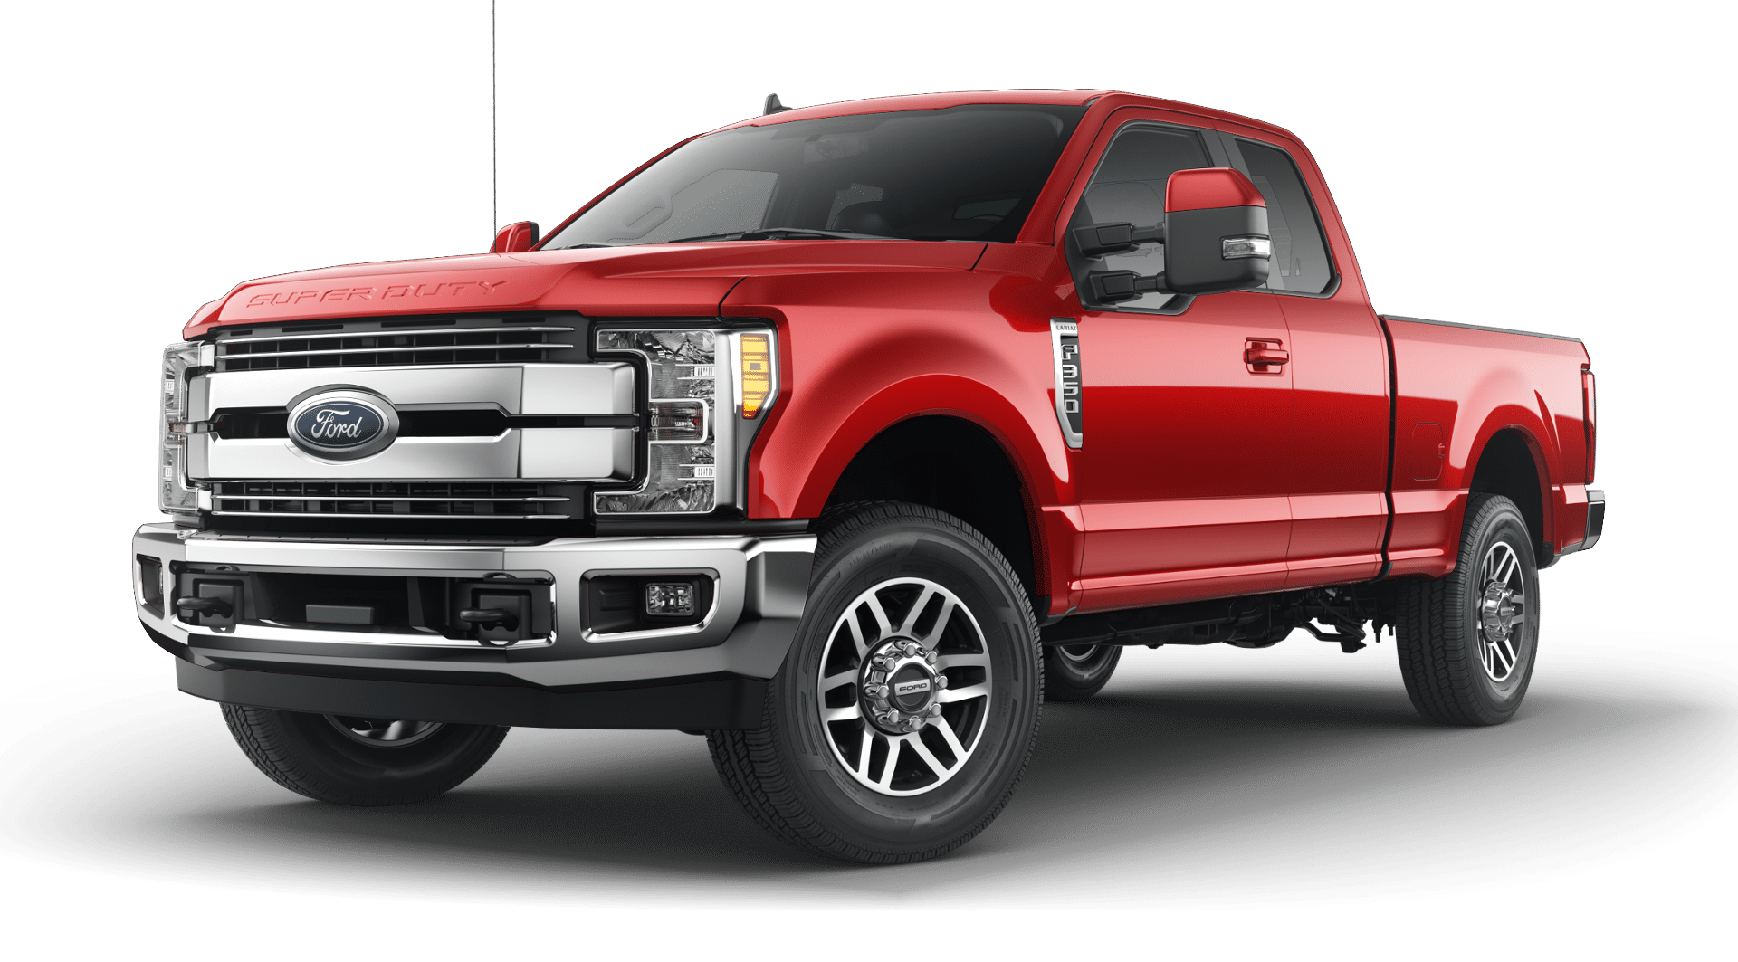 Ford F-350 2019 Lariat 6.2 V8 SOHC FFV Бензин 6-ст. АКПП Torqshift® Heavy-Duty Selectshift™ Дизель Задний